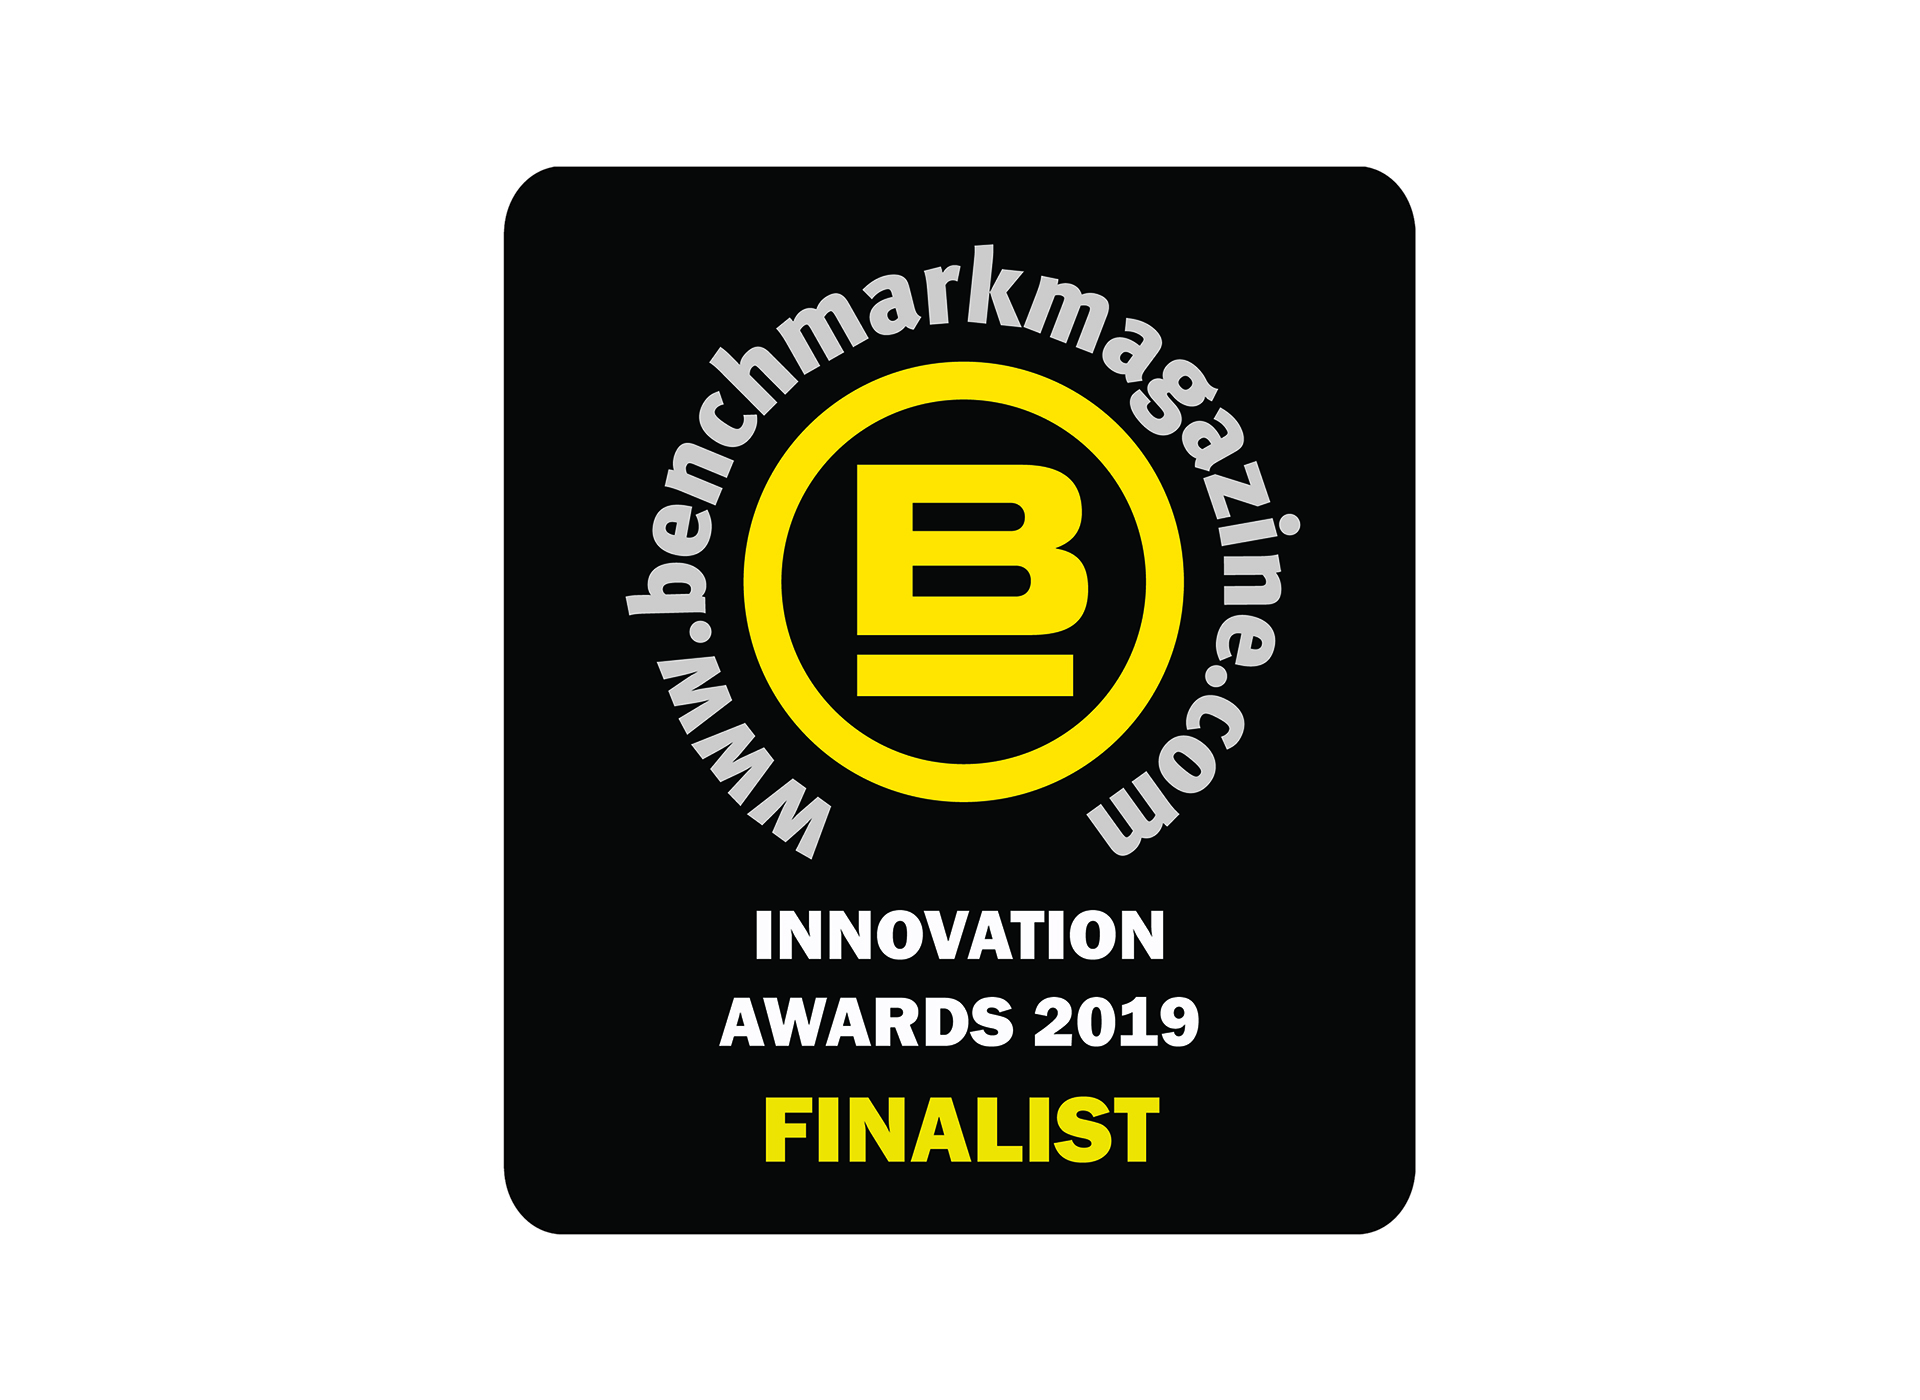 Finalist beim Benchmark Innovation Award 2019